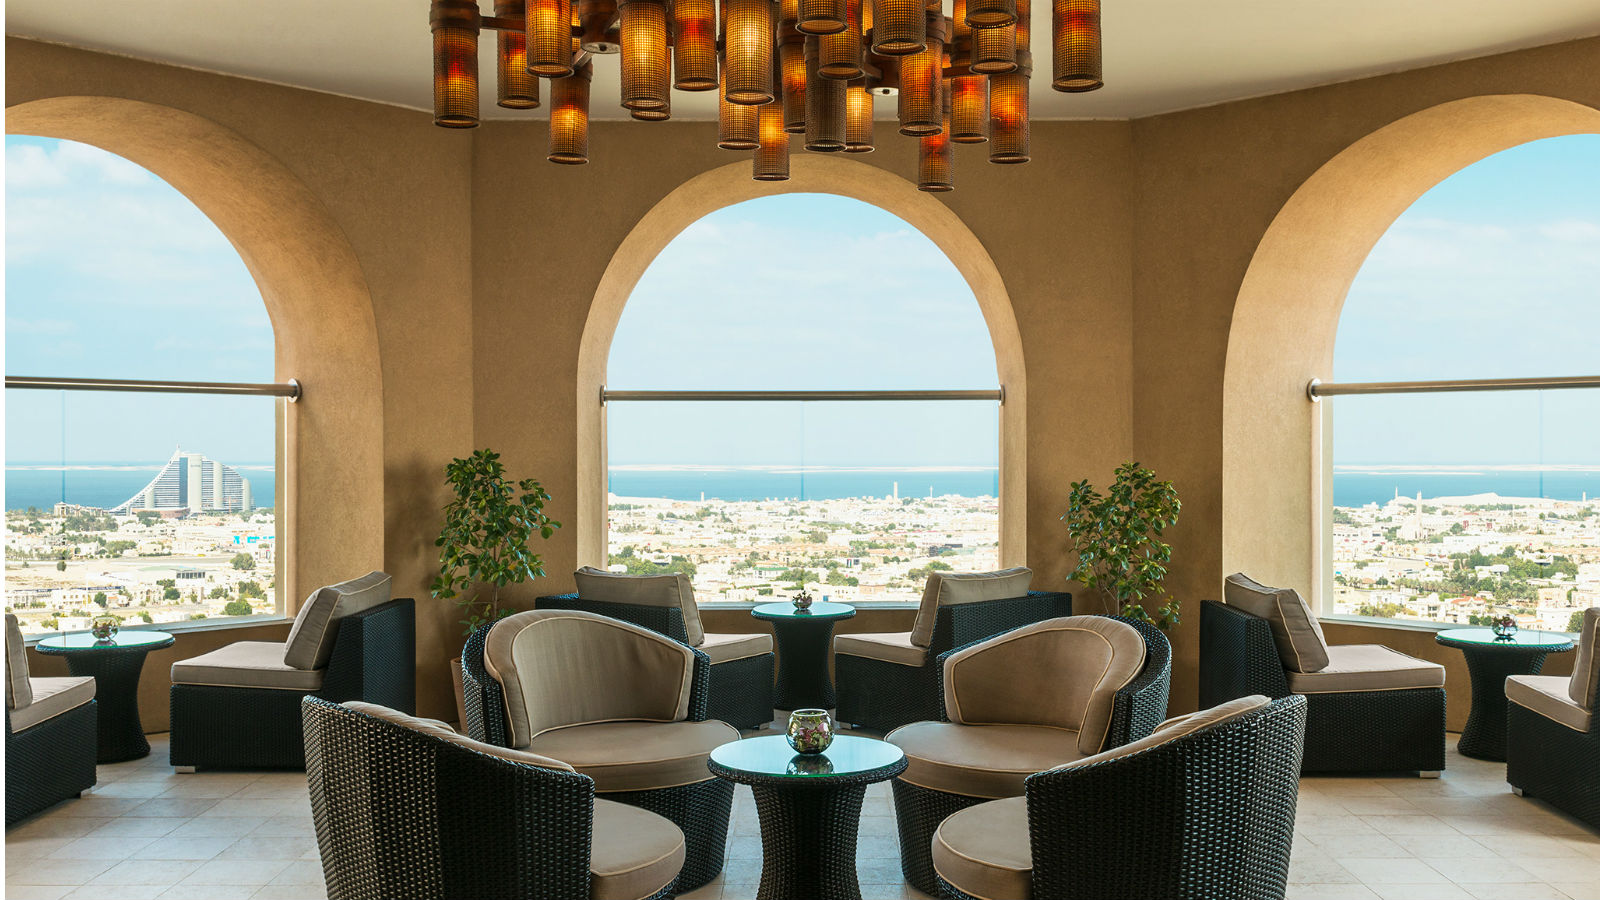 Sanctuary Lounge- Sheraton Dubai of the Emirates